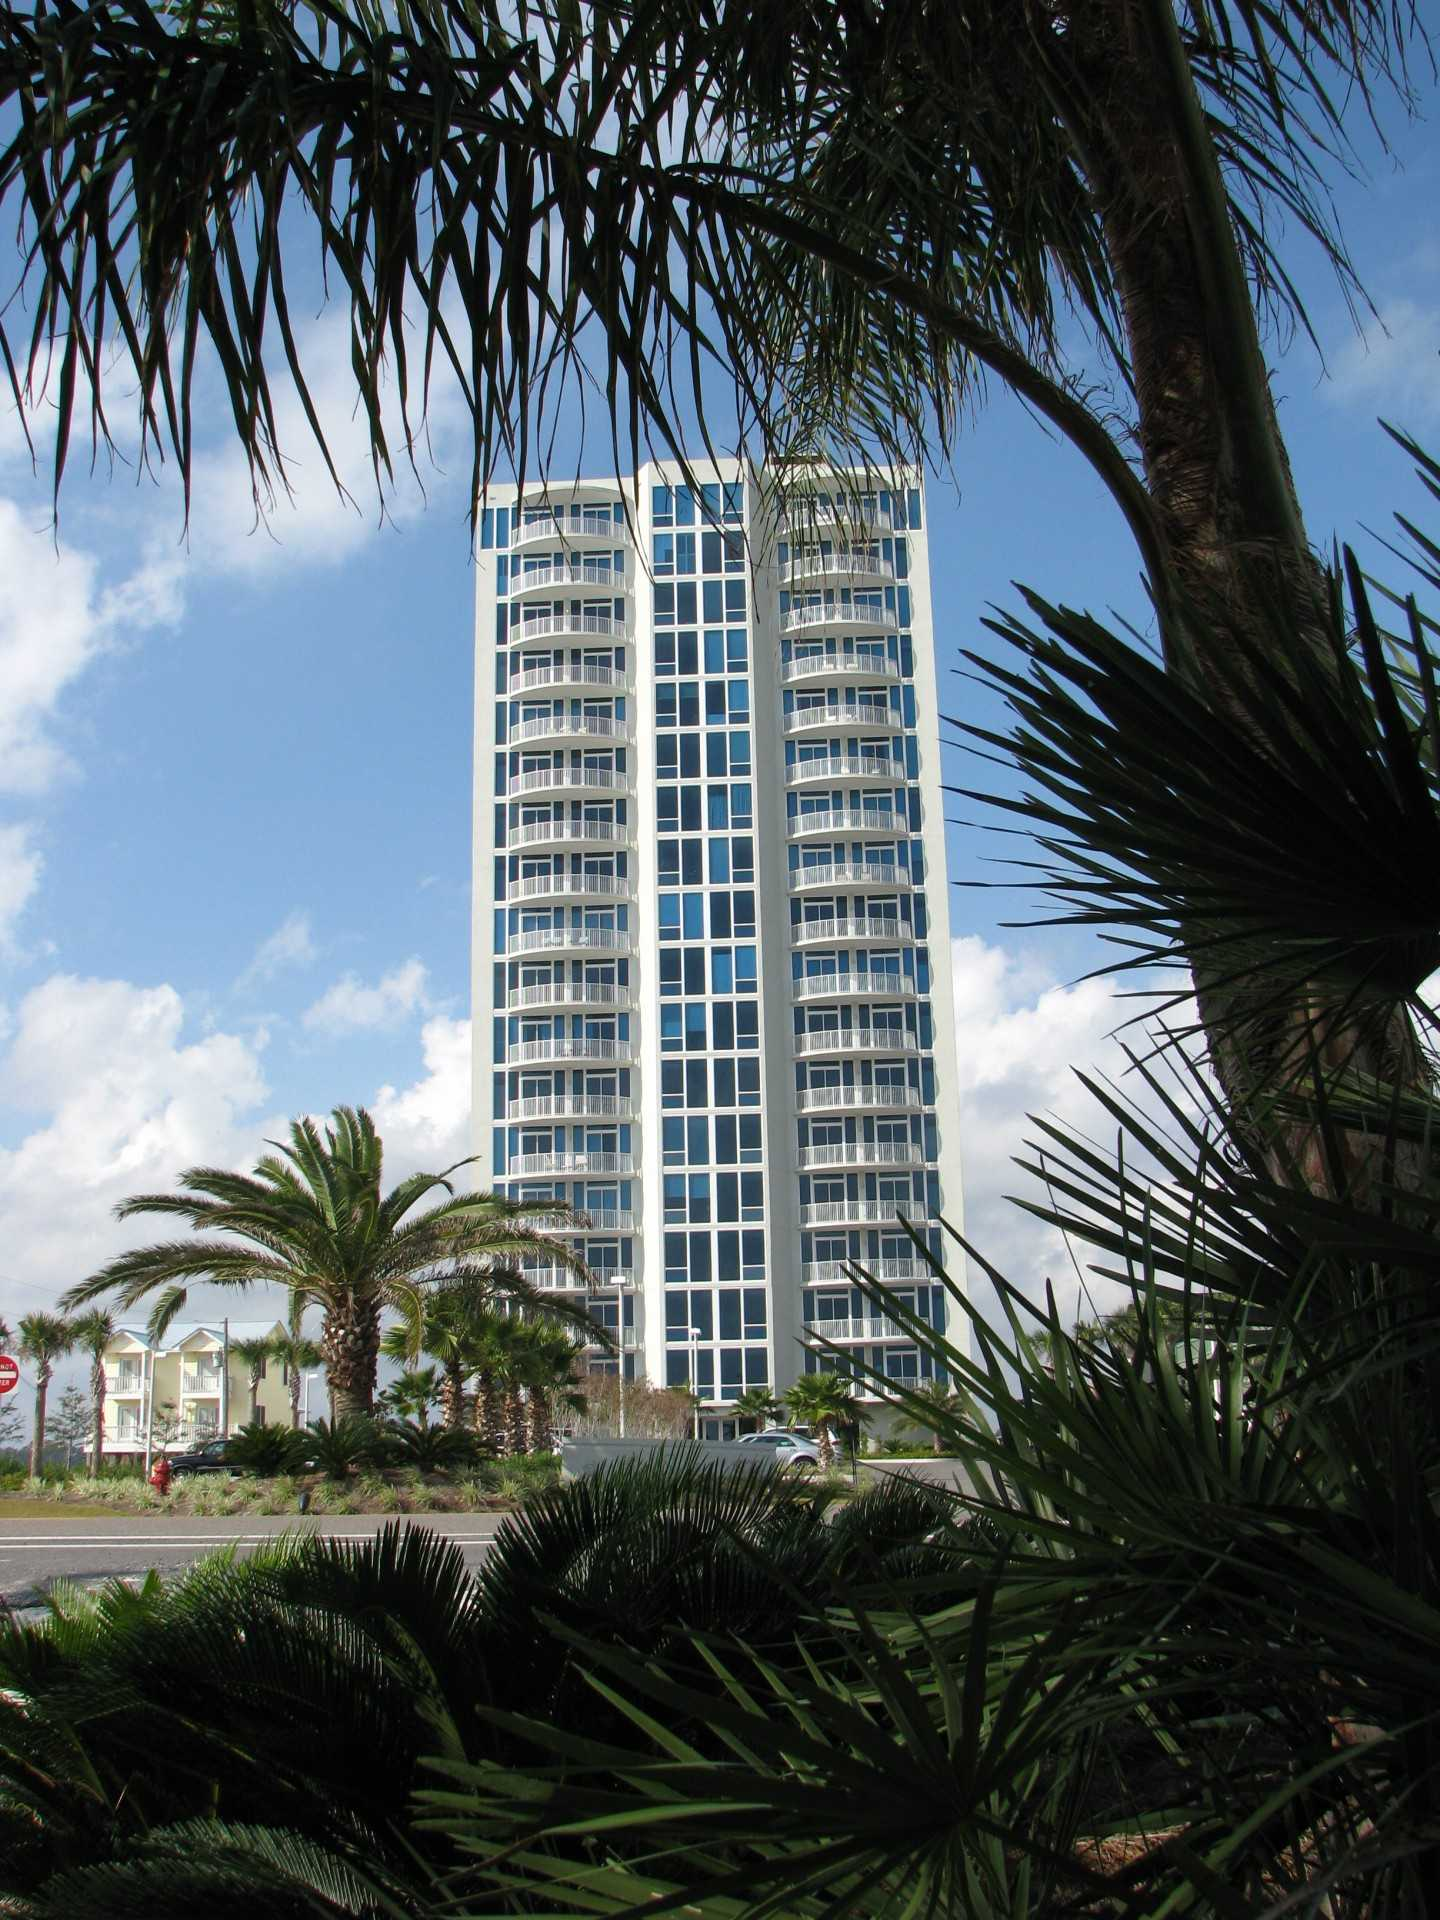 Bel Sole Condominiums